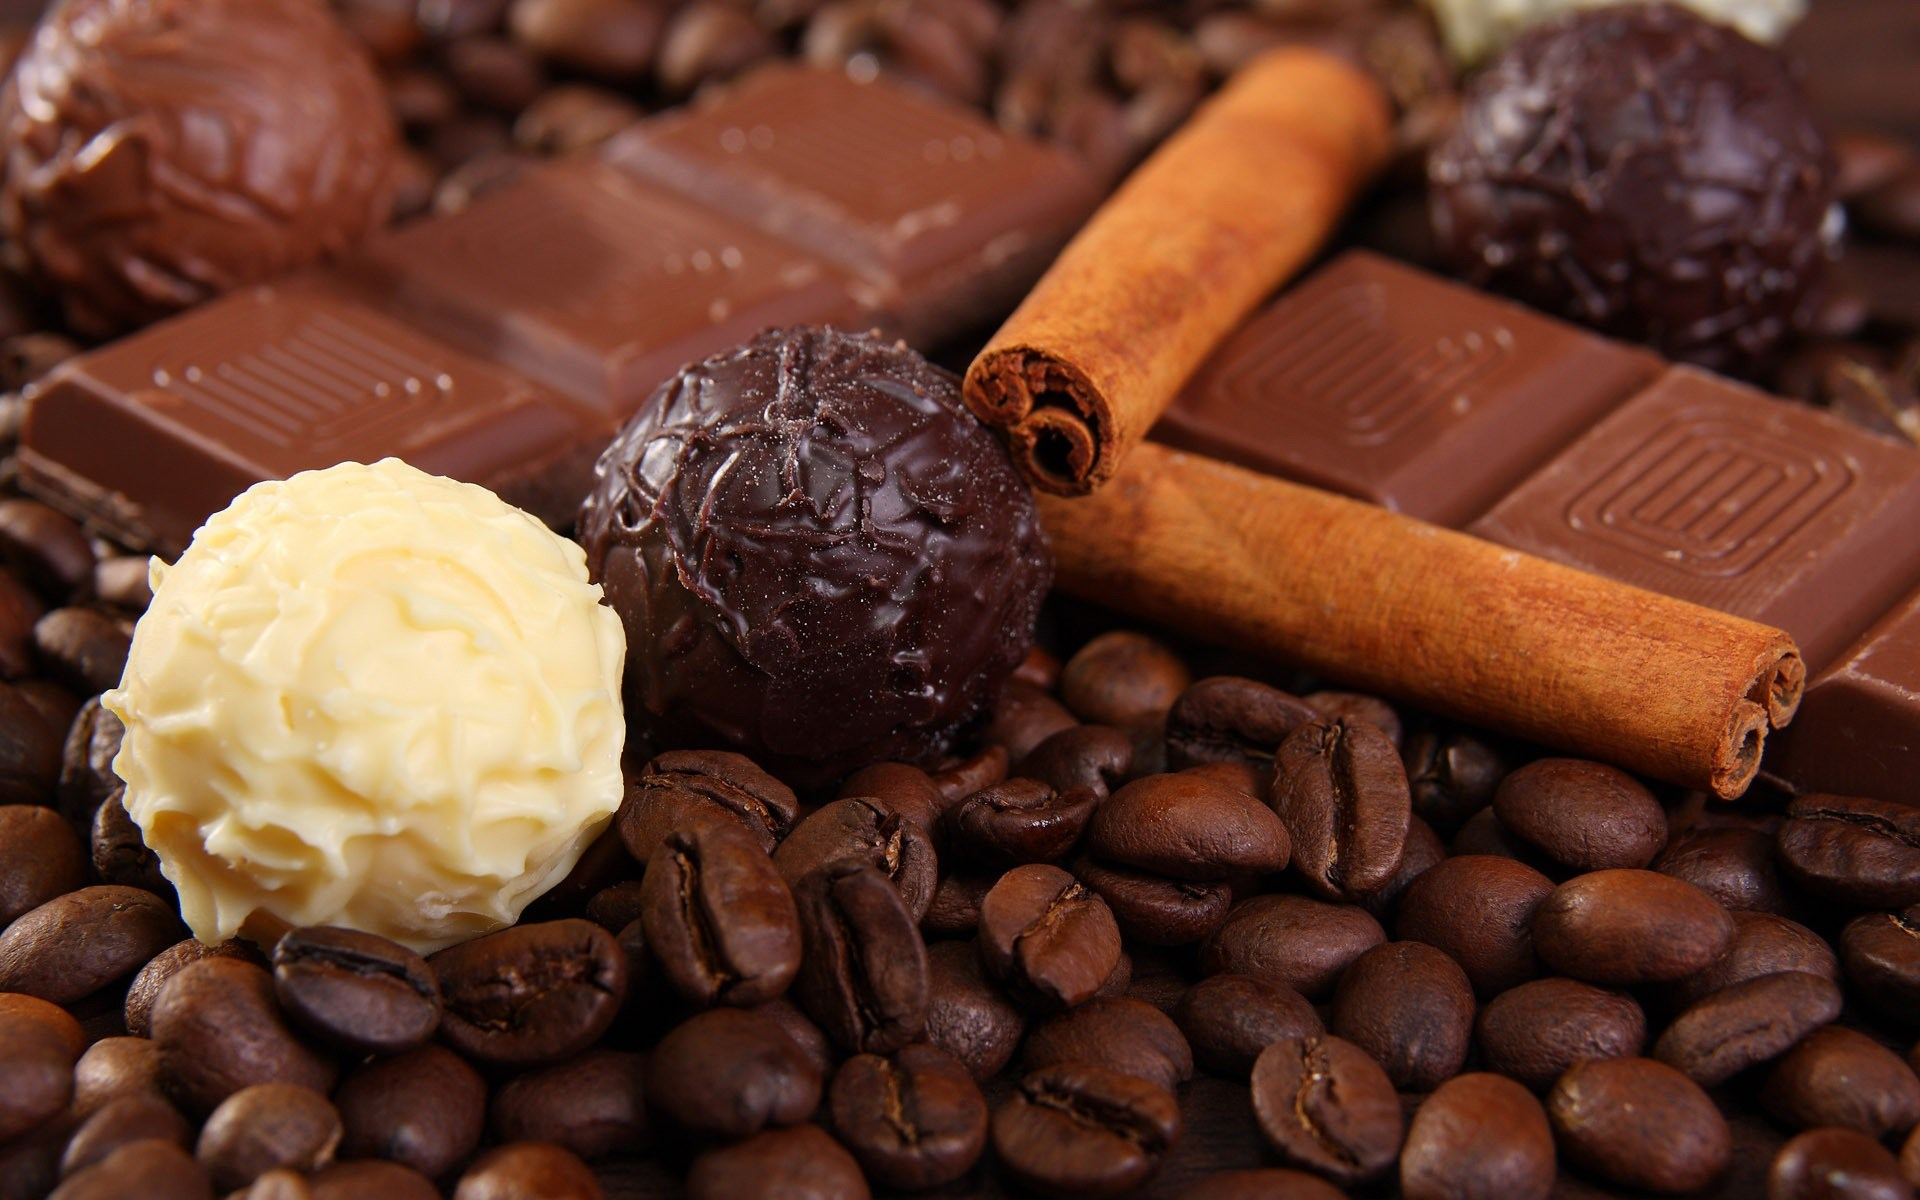 Chocolate Food Candy Sweets Candies Wallpaper 1920x1200